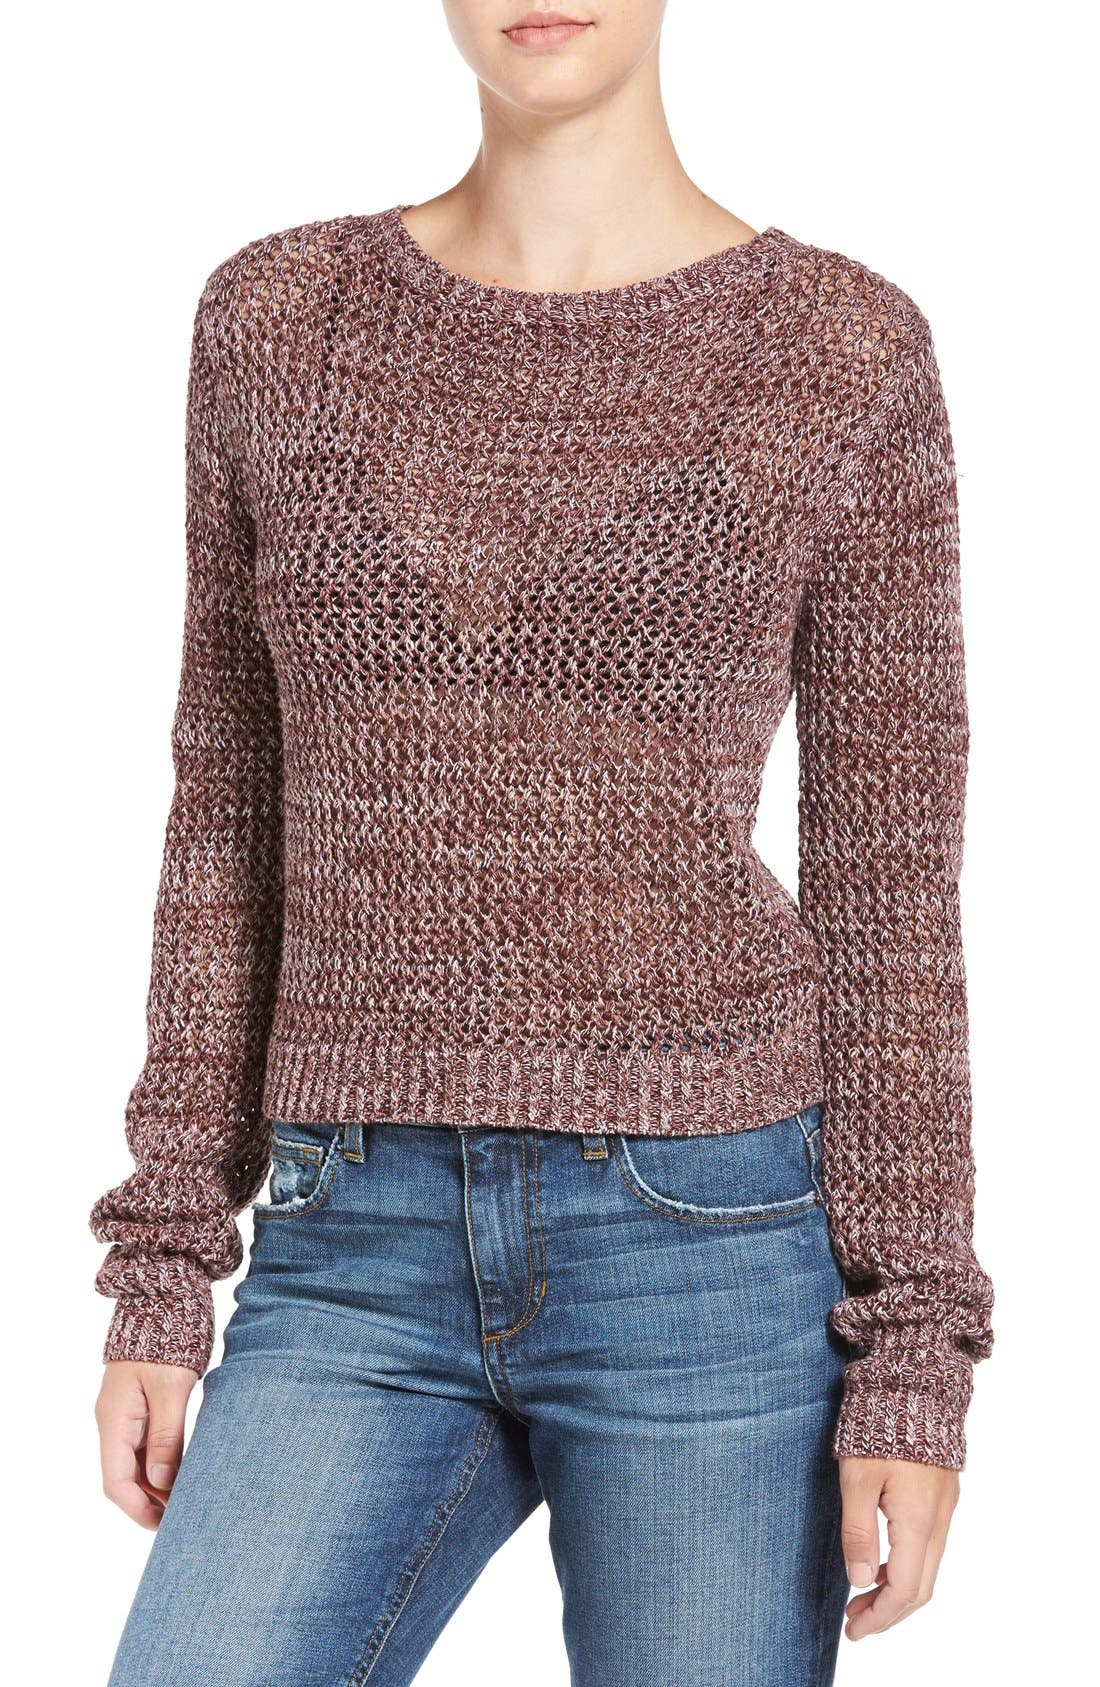 Alternate Image 1 Selected - Joe's 'Reed' Crochet Cotton Sweater